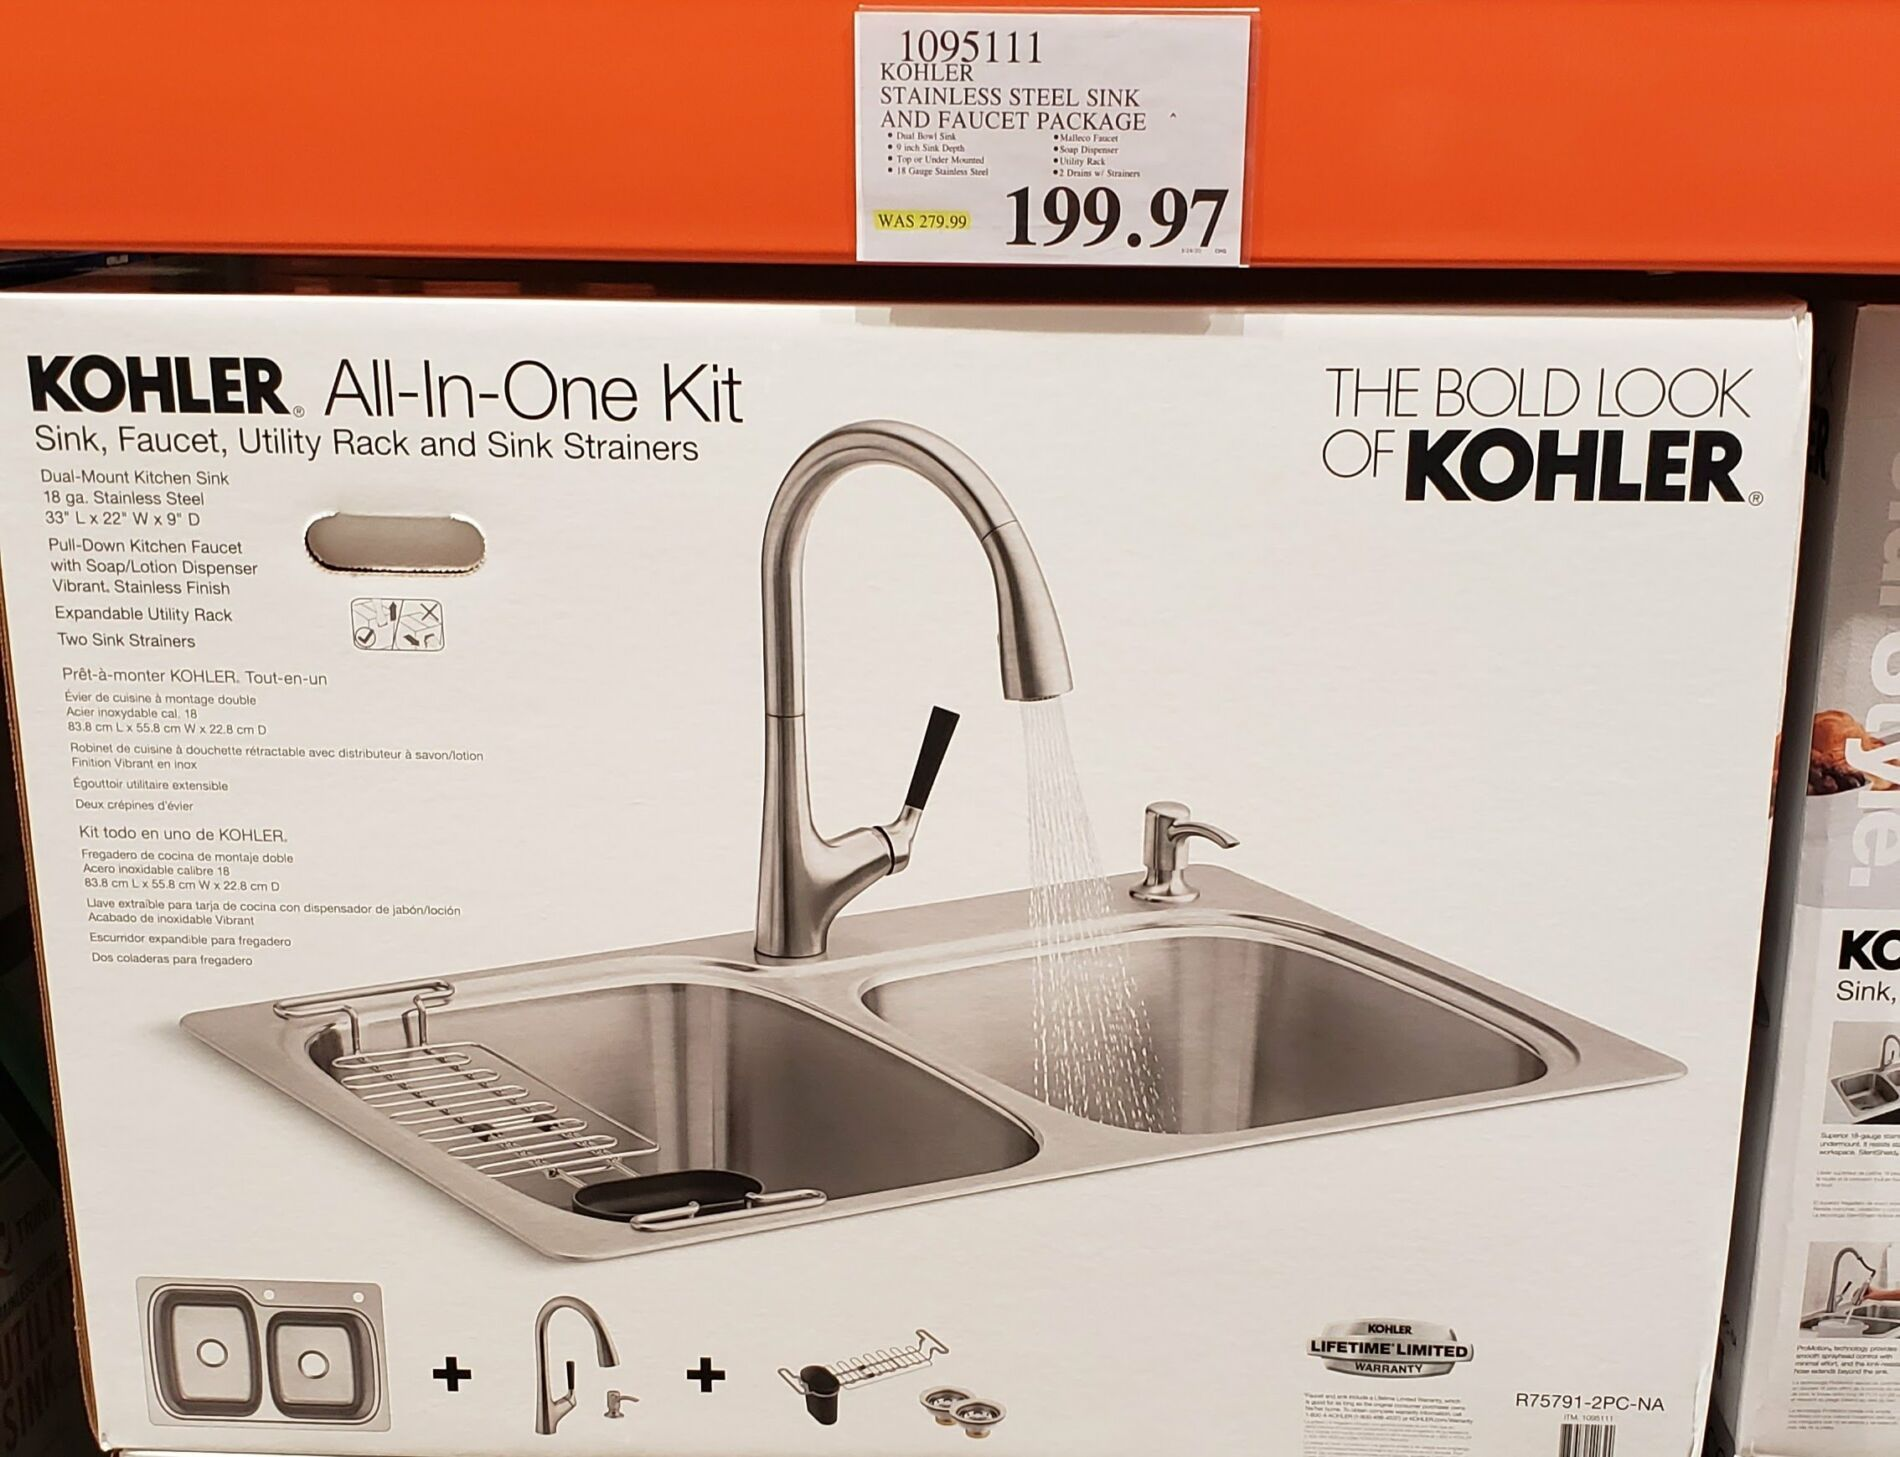 Kohler Stainless Steel Sink And Faucet Package 199 97 Costco Clearance Stainless Steel Sinks Sink Faucet